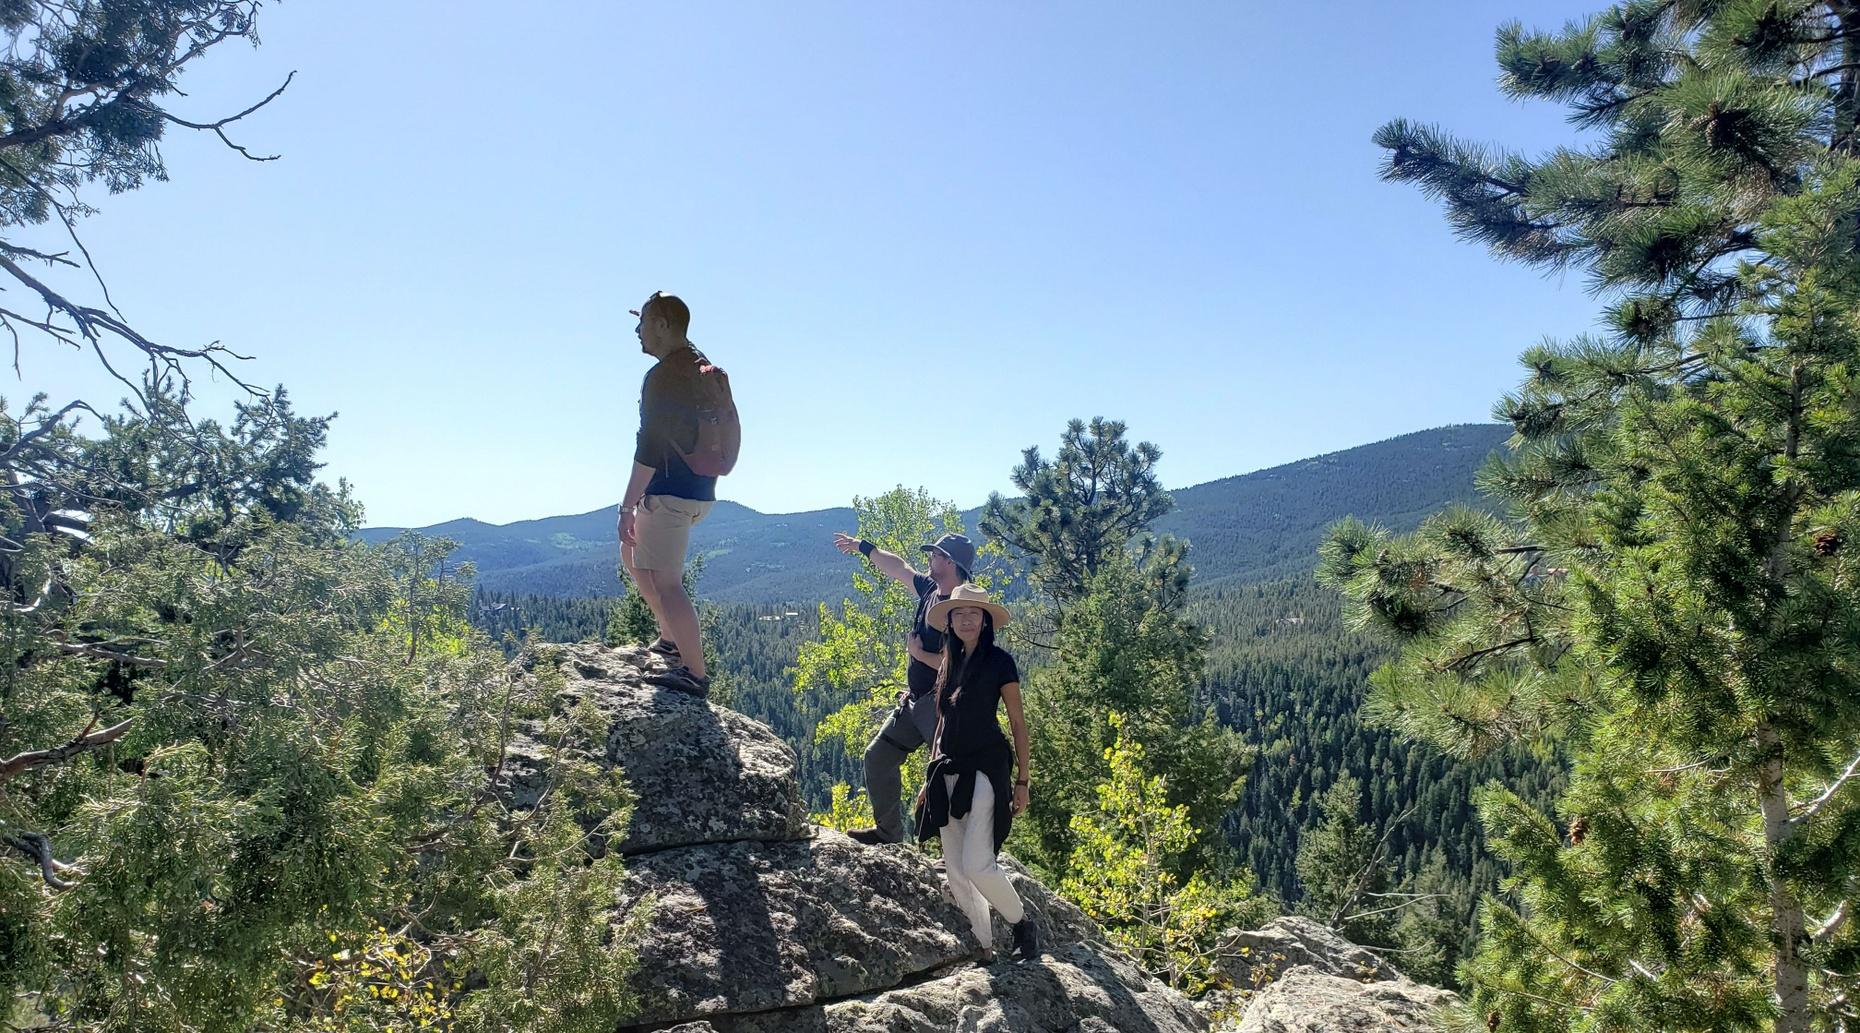 Small-Group, Half-Day Hiking Tour of the Rockies in Denver